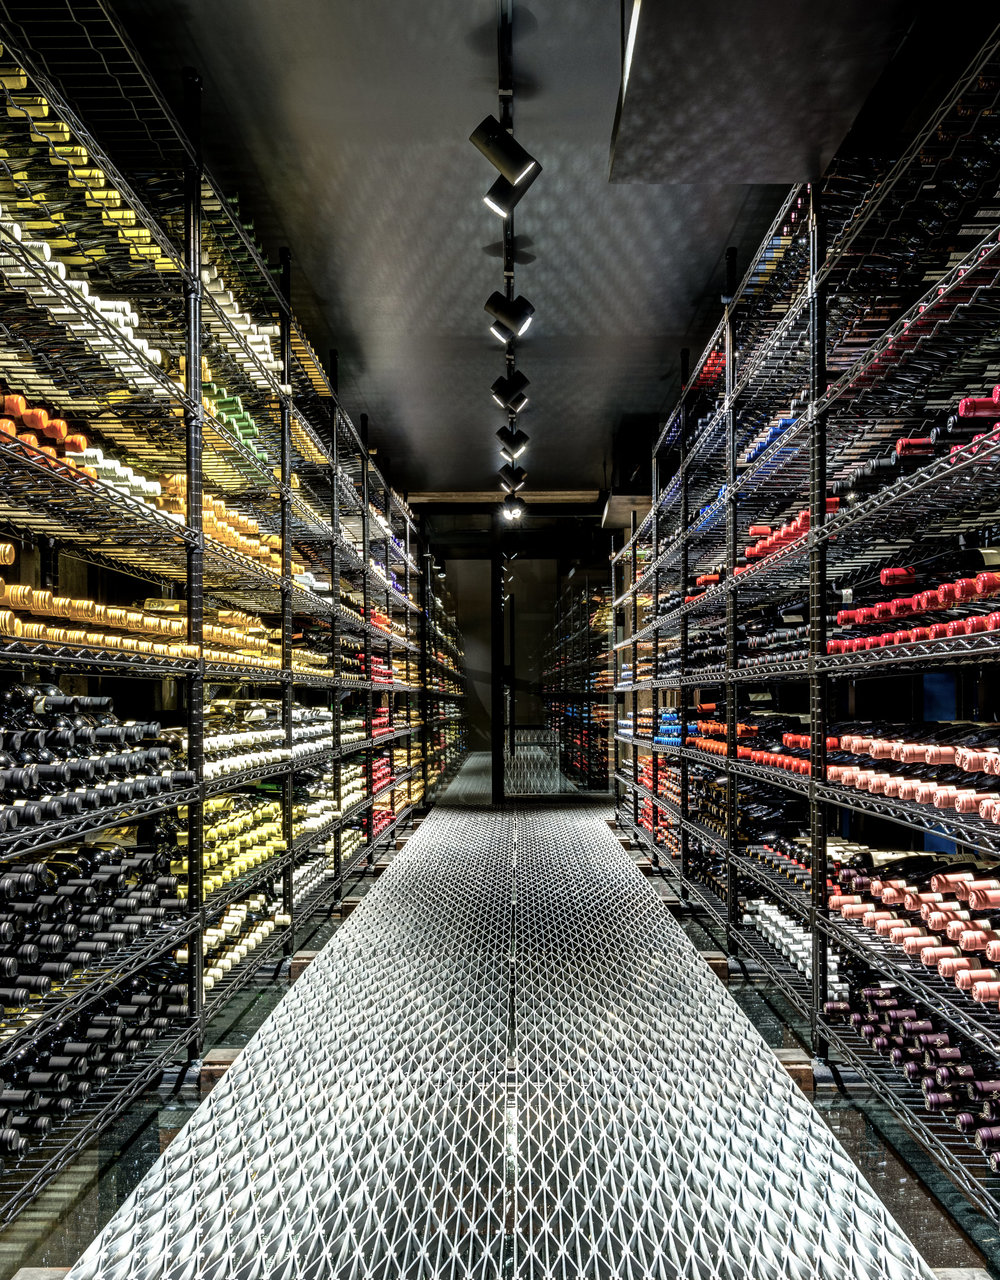 Glass Cellar